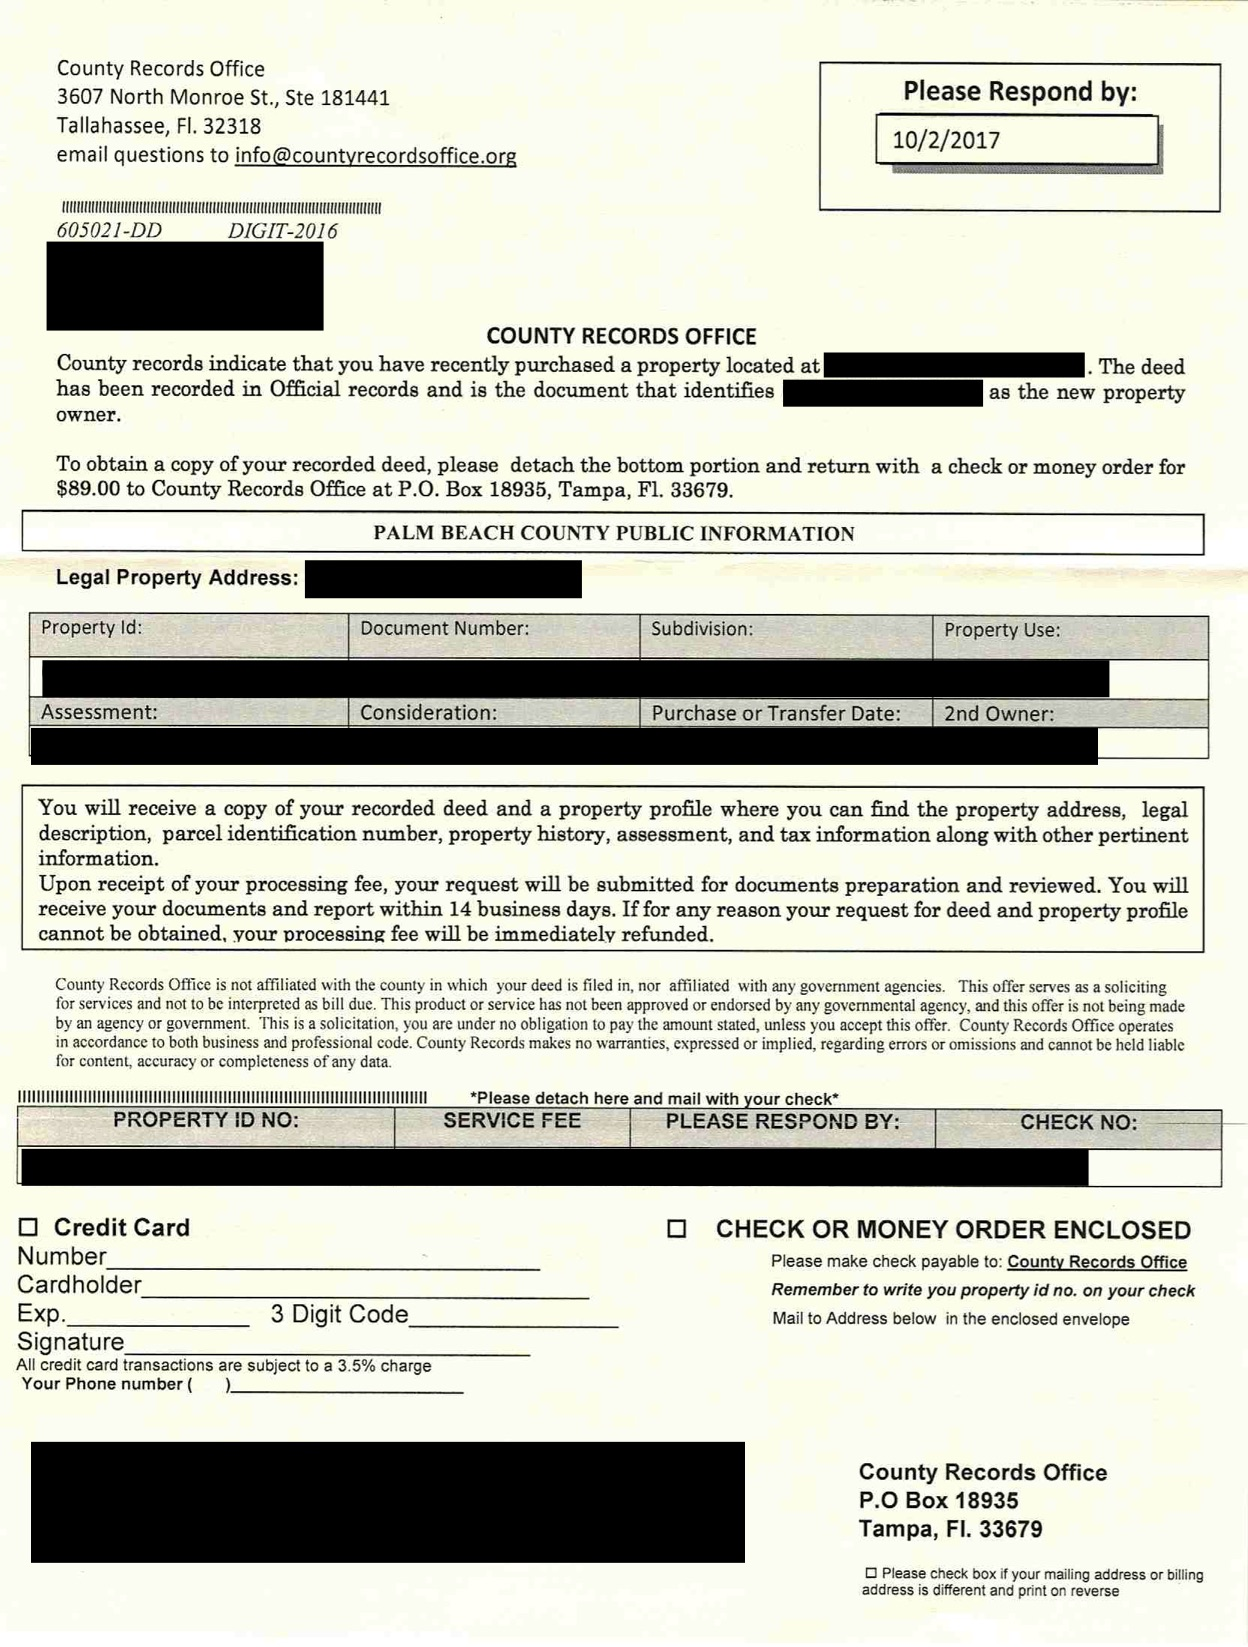 Beware Fake Deed Scam Letters From County Records fice